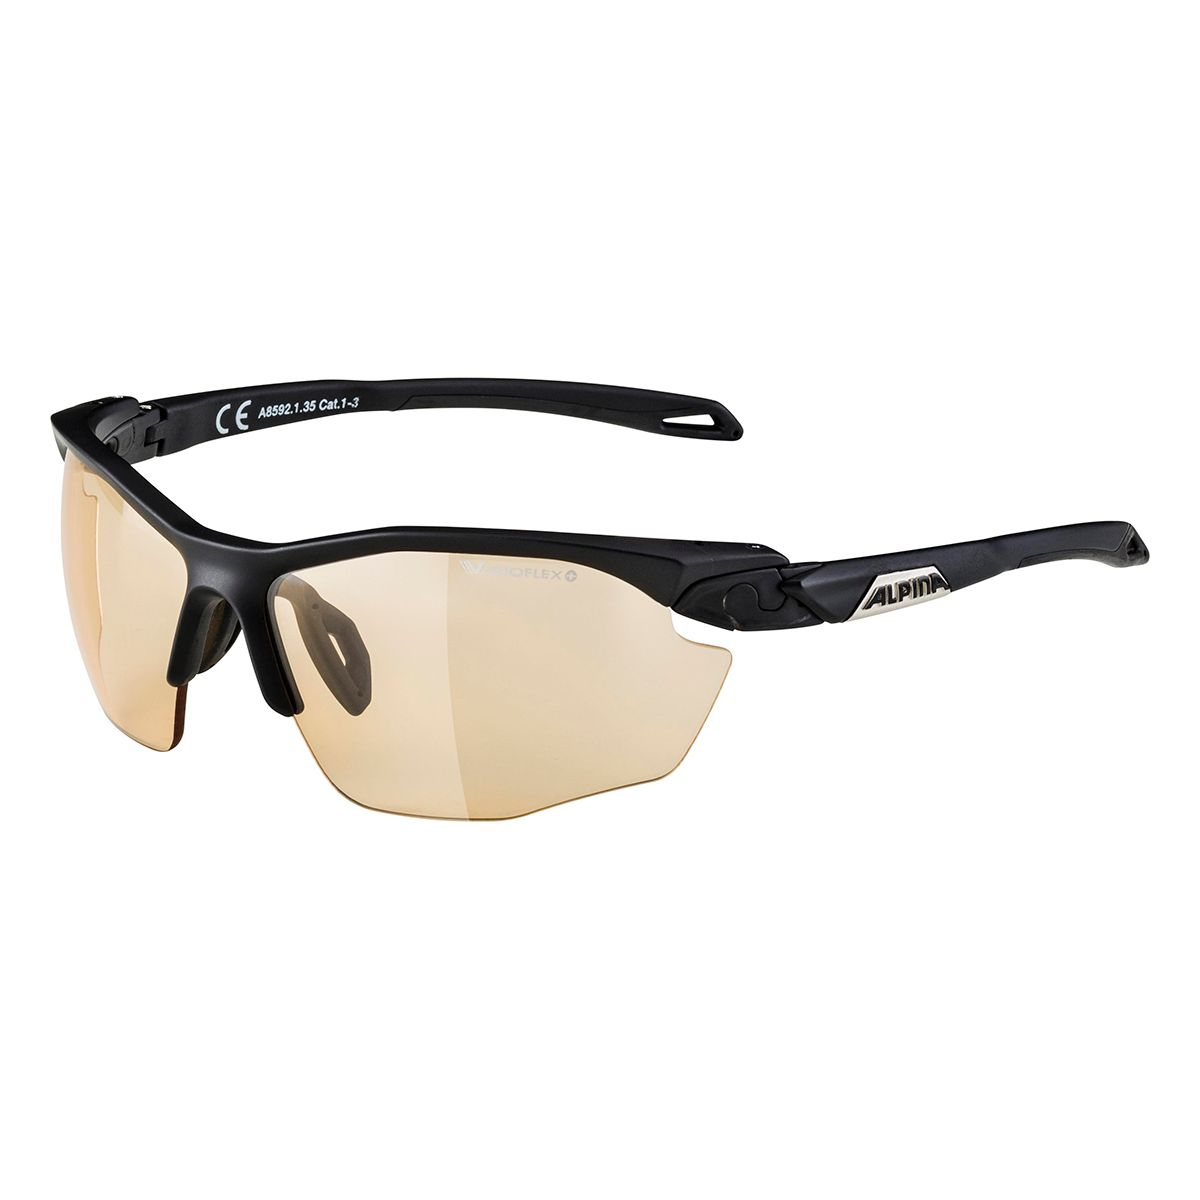 TWIST FIVE HR VL+ Sportbrille